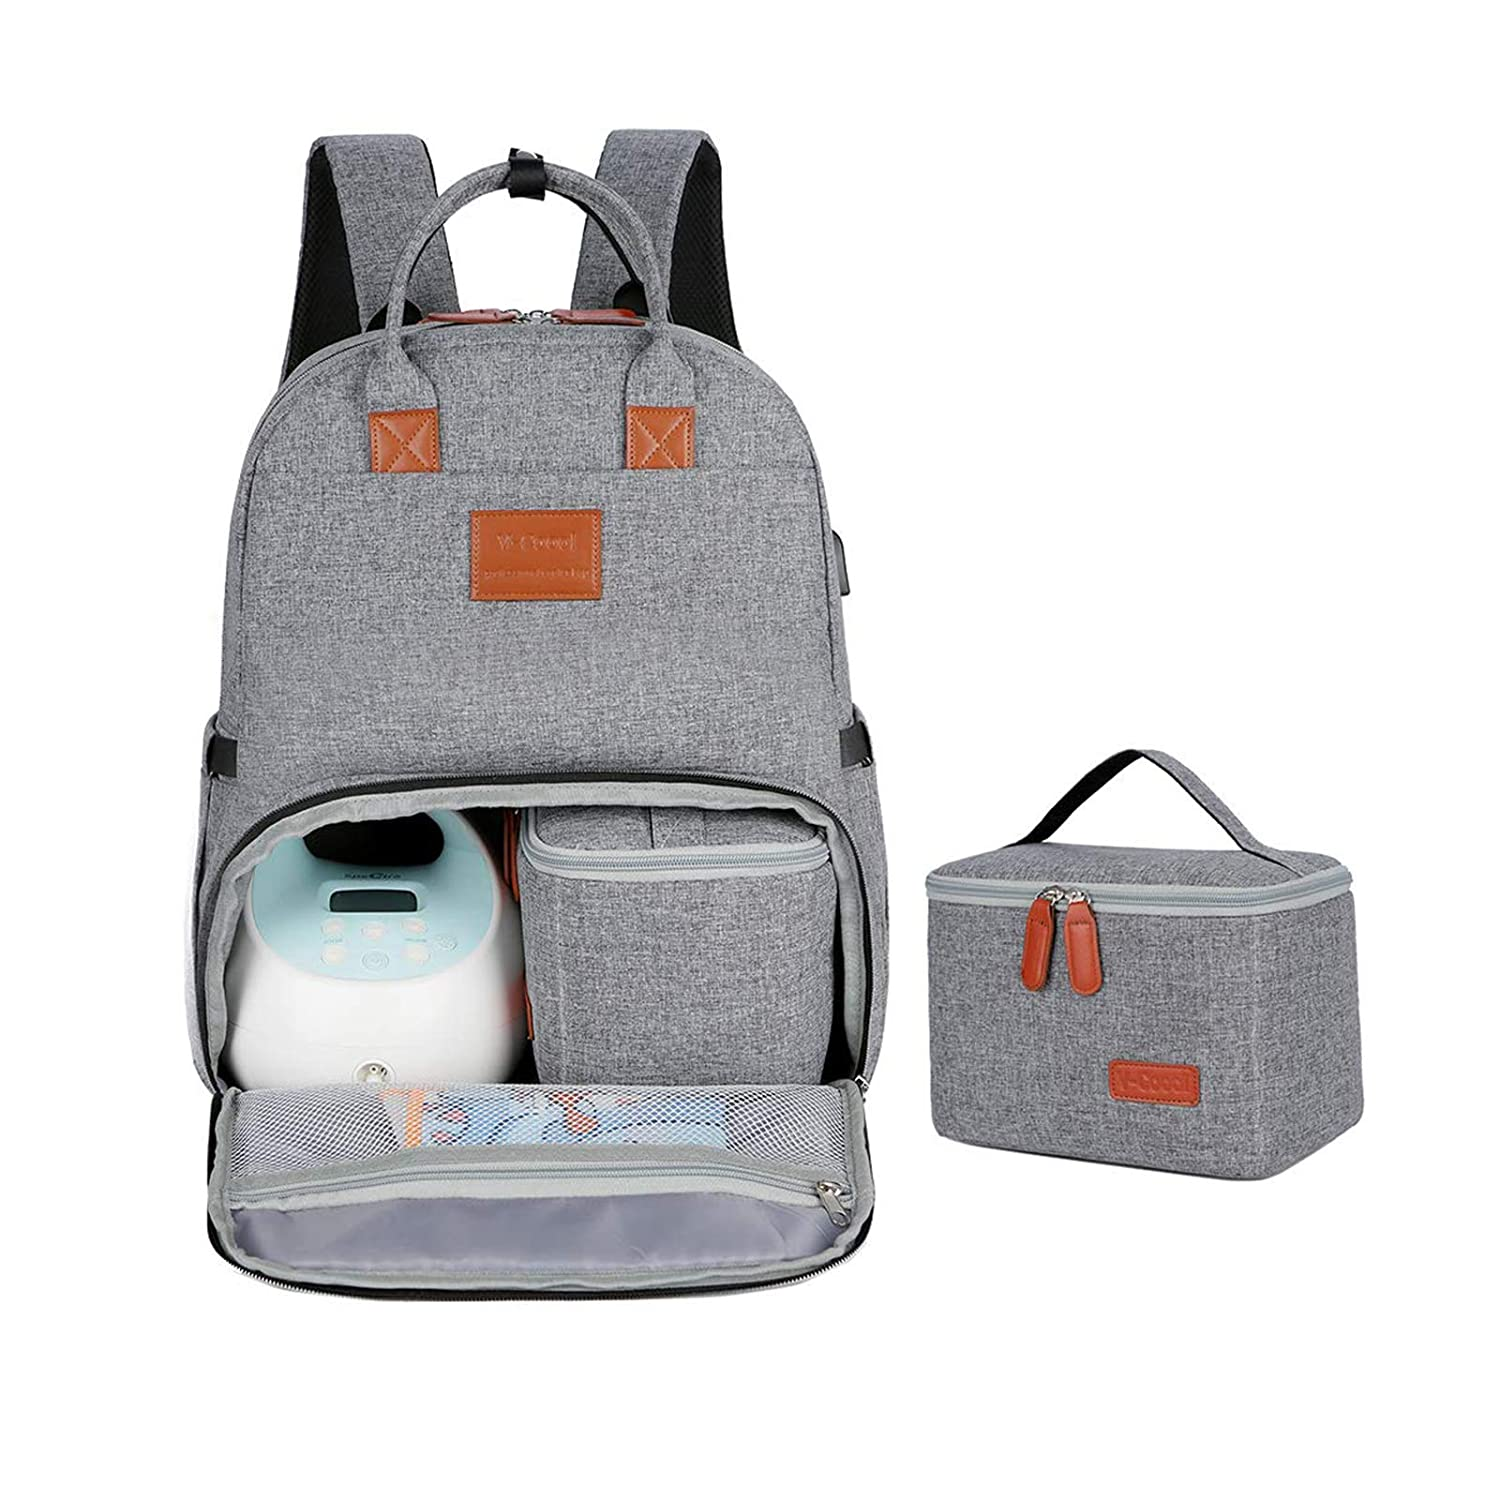 V-COOOL Breast Pump Bag Backpack, Tote Bag with 15.6 Inch Laptop, Fits Most Brands Breast Pumps Like Spectra S1 S2 and Cooler Bag, Pumping Bag for Working Mom(Gray)